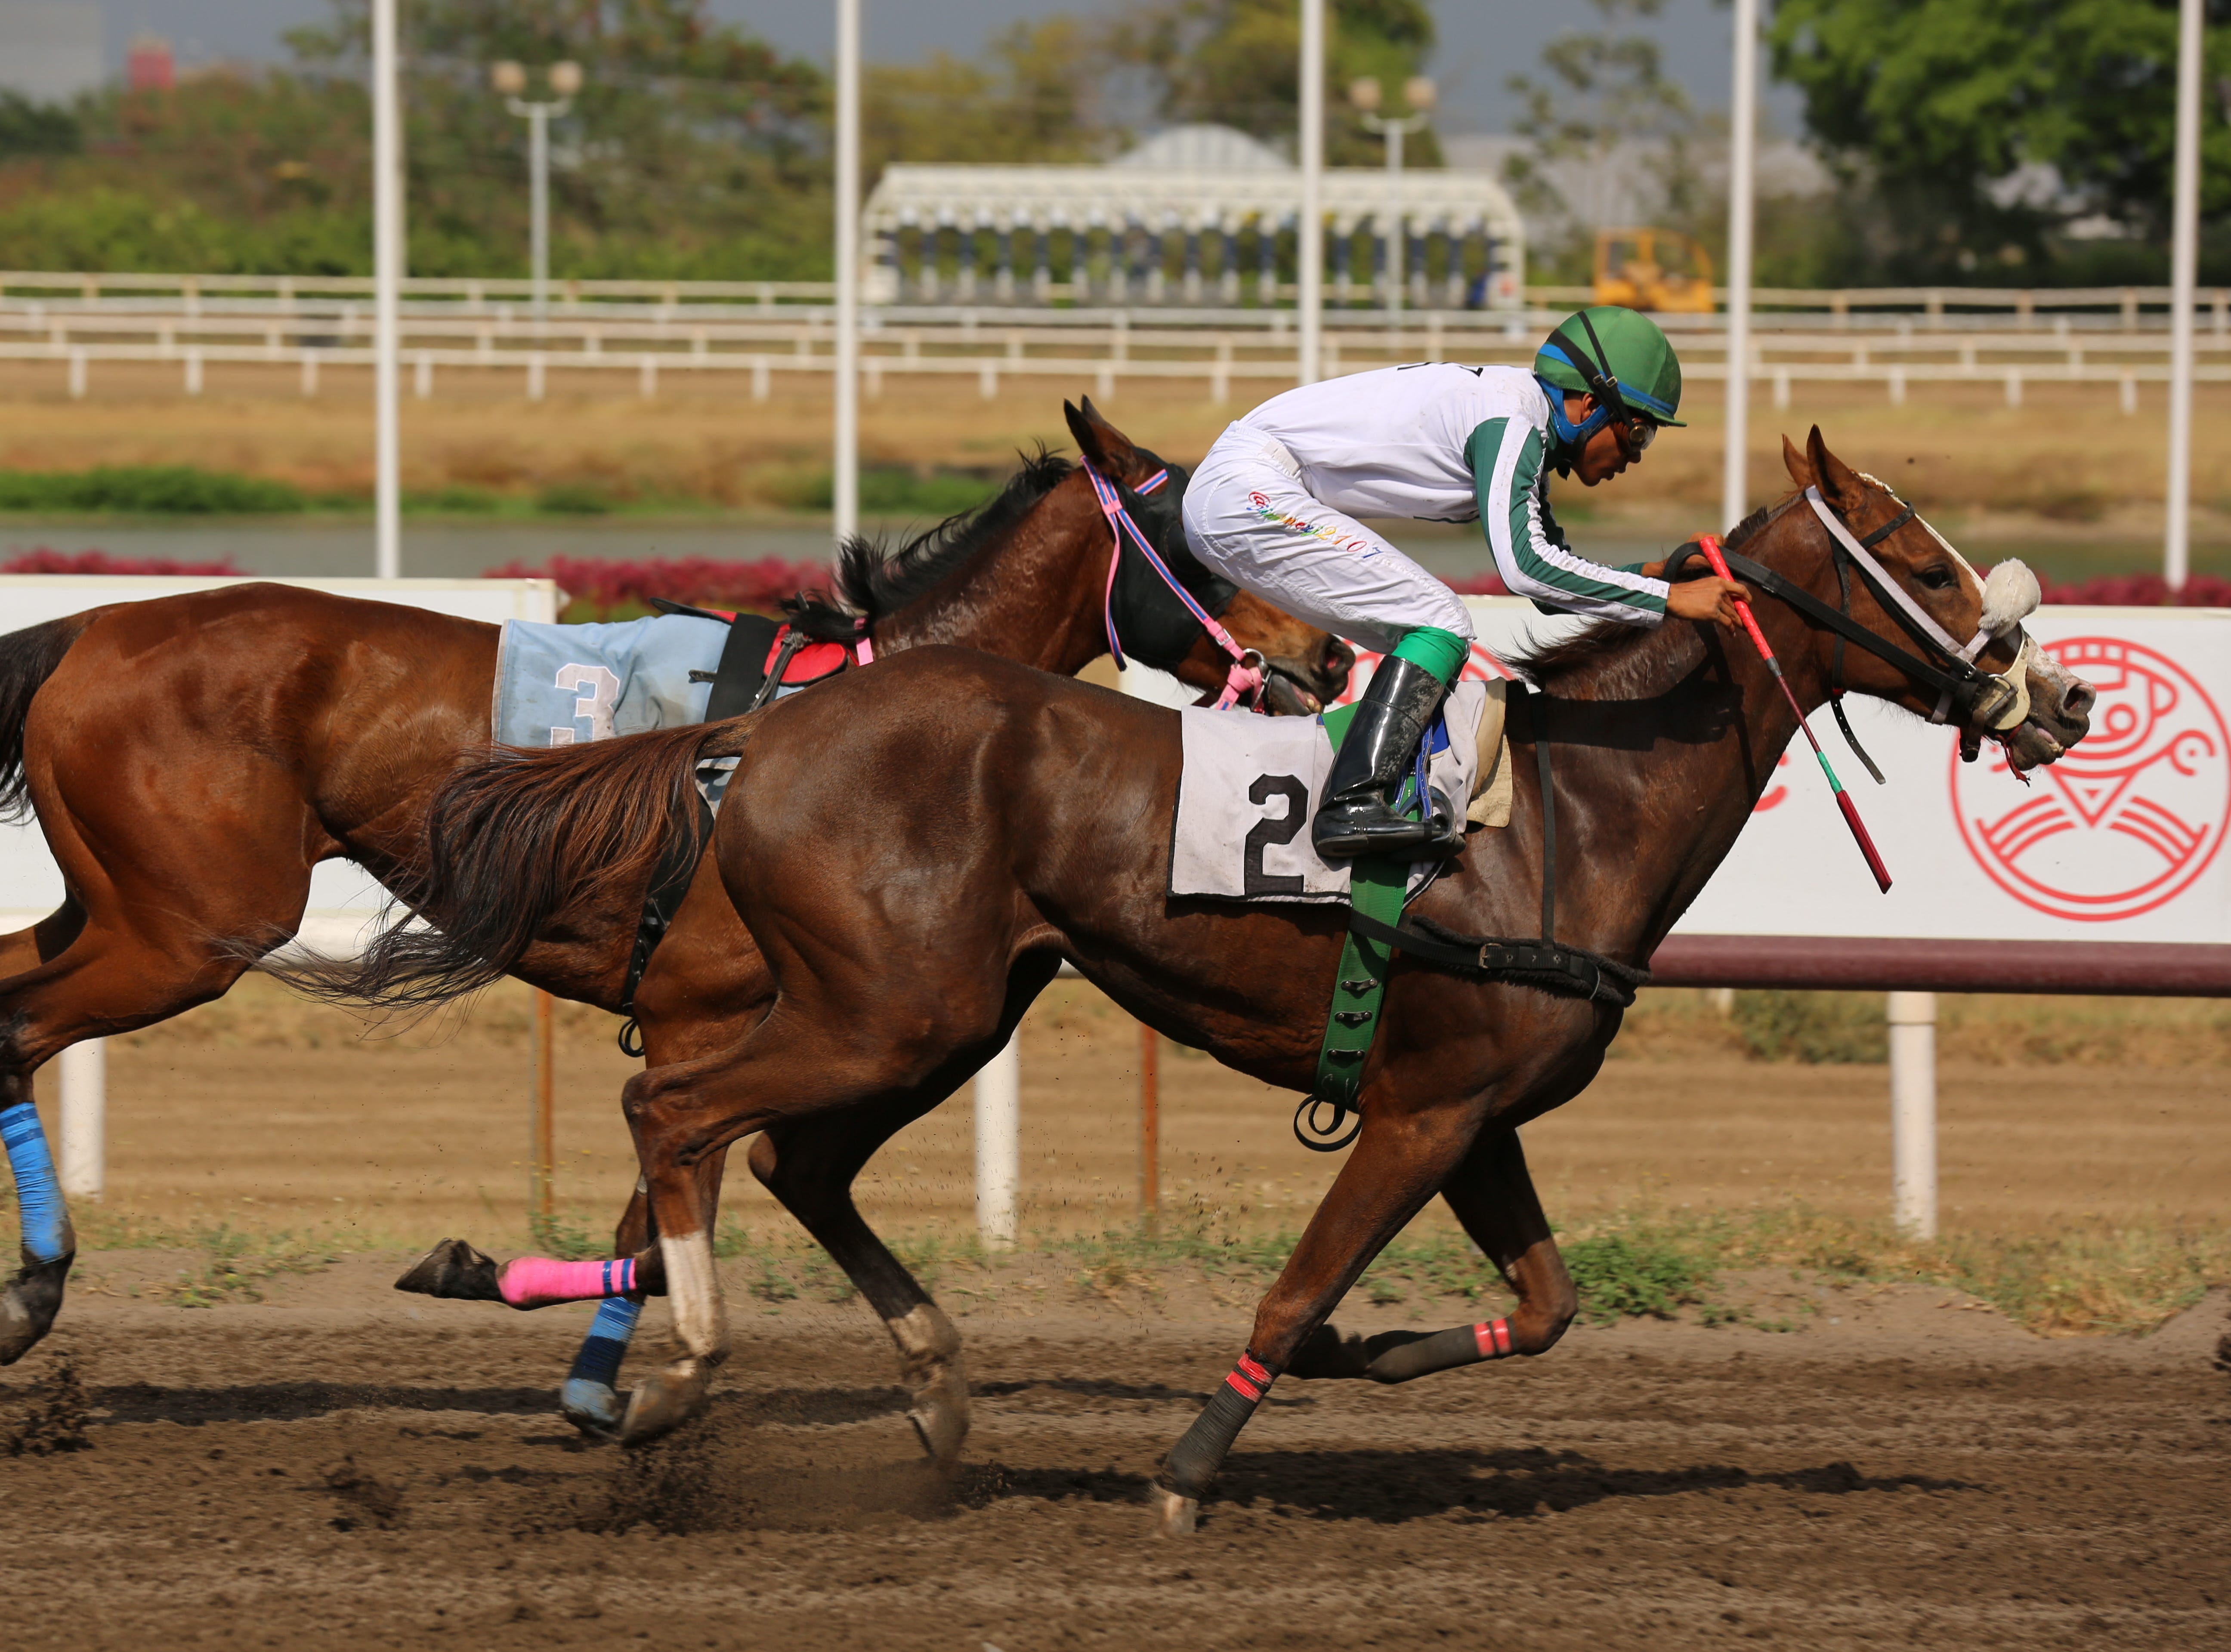 In Panama, 'Cradle of the best jockeys in the world,' the famed Laffit Pincay Jr. Technical Jockey Training Academy has trained top thoroughbred riders for decades.